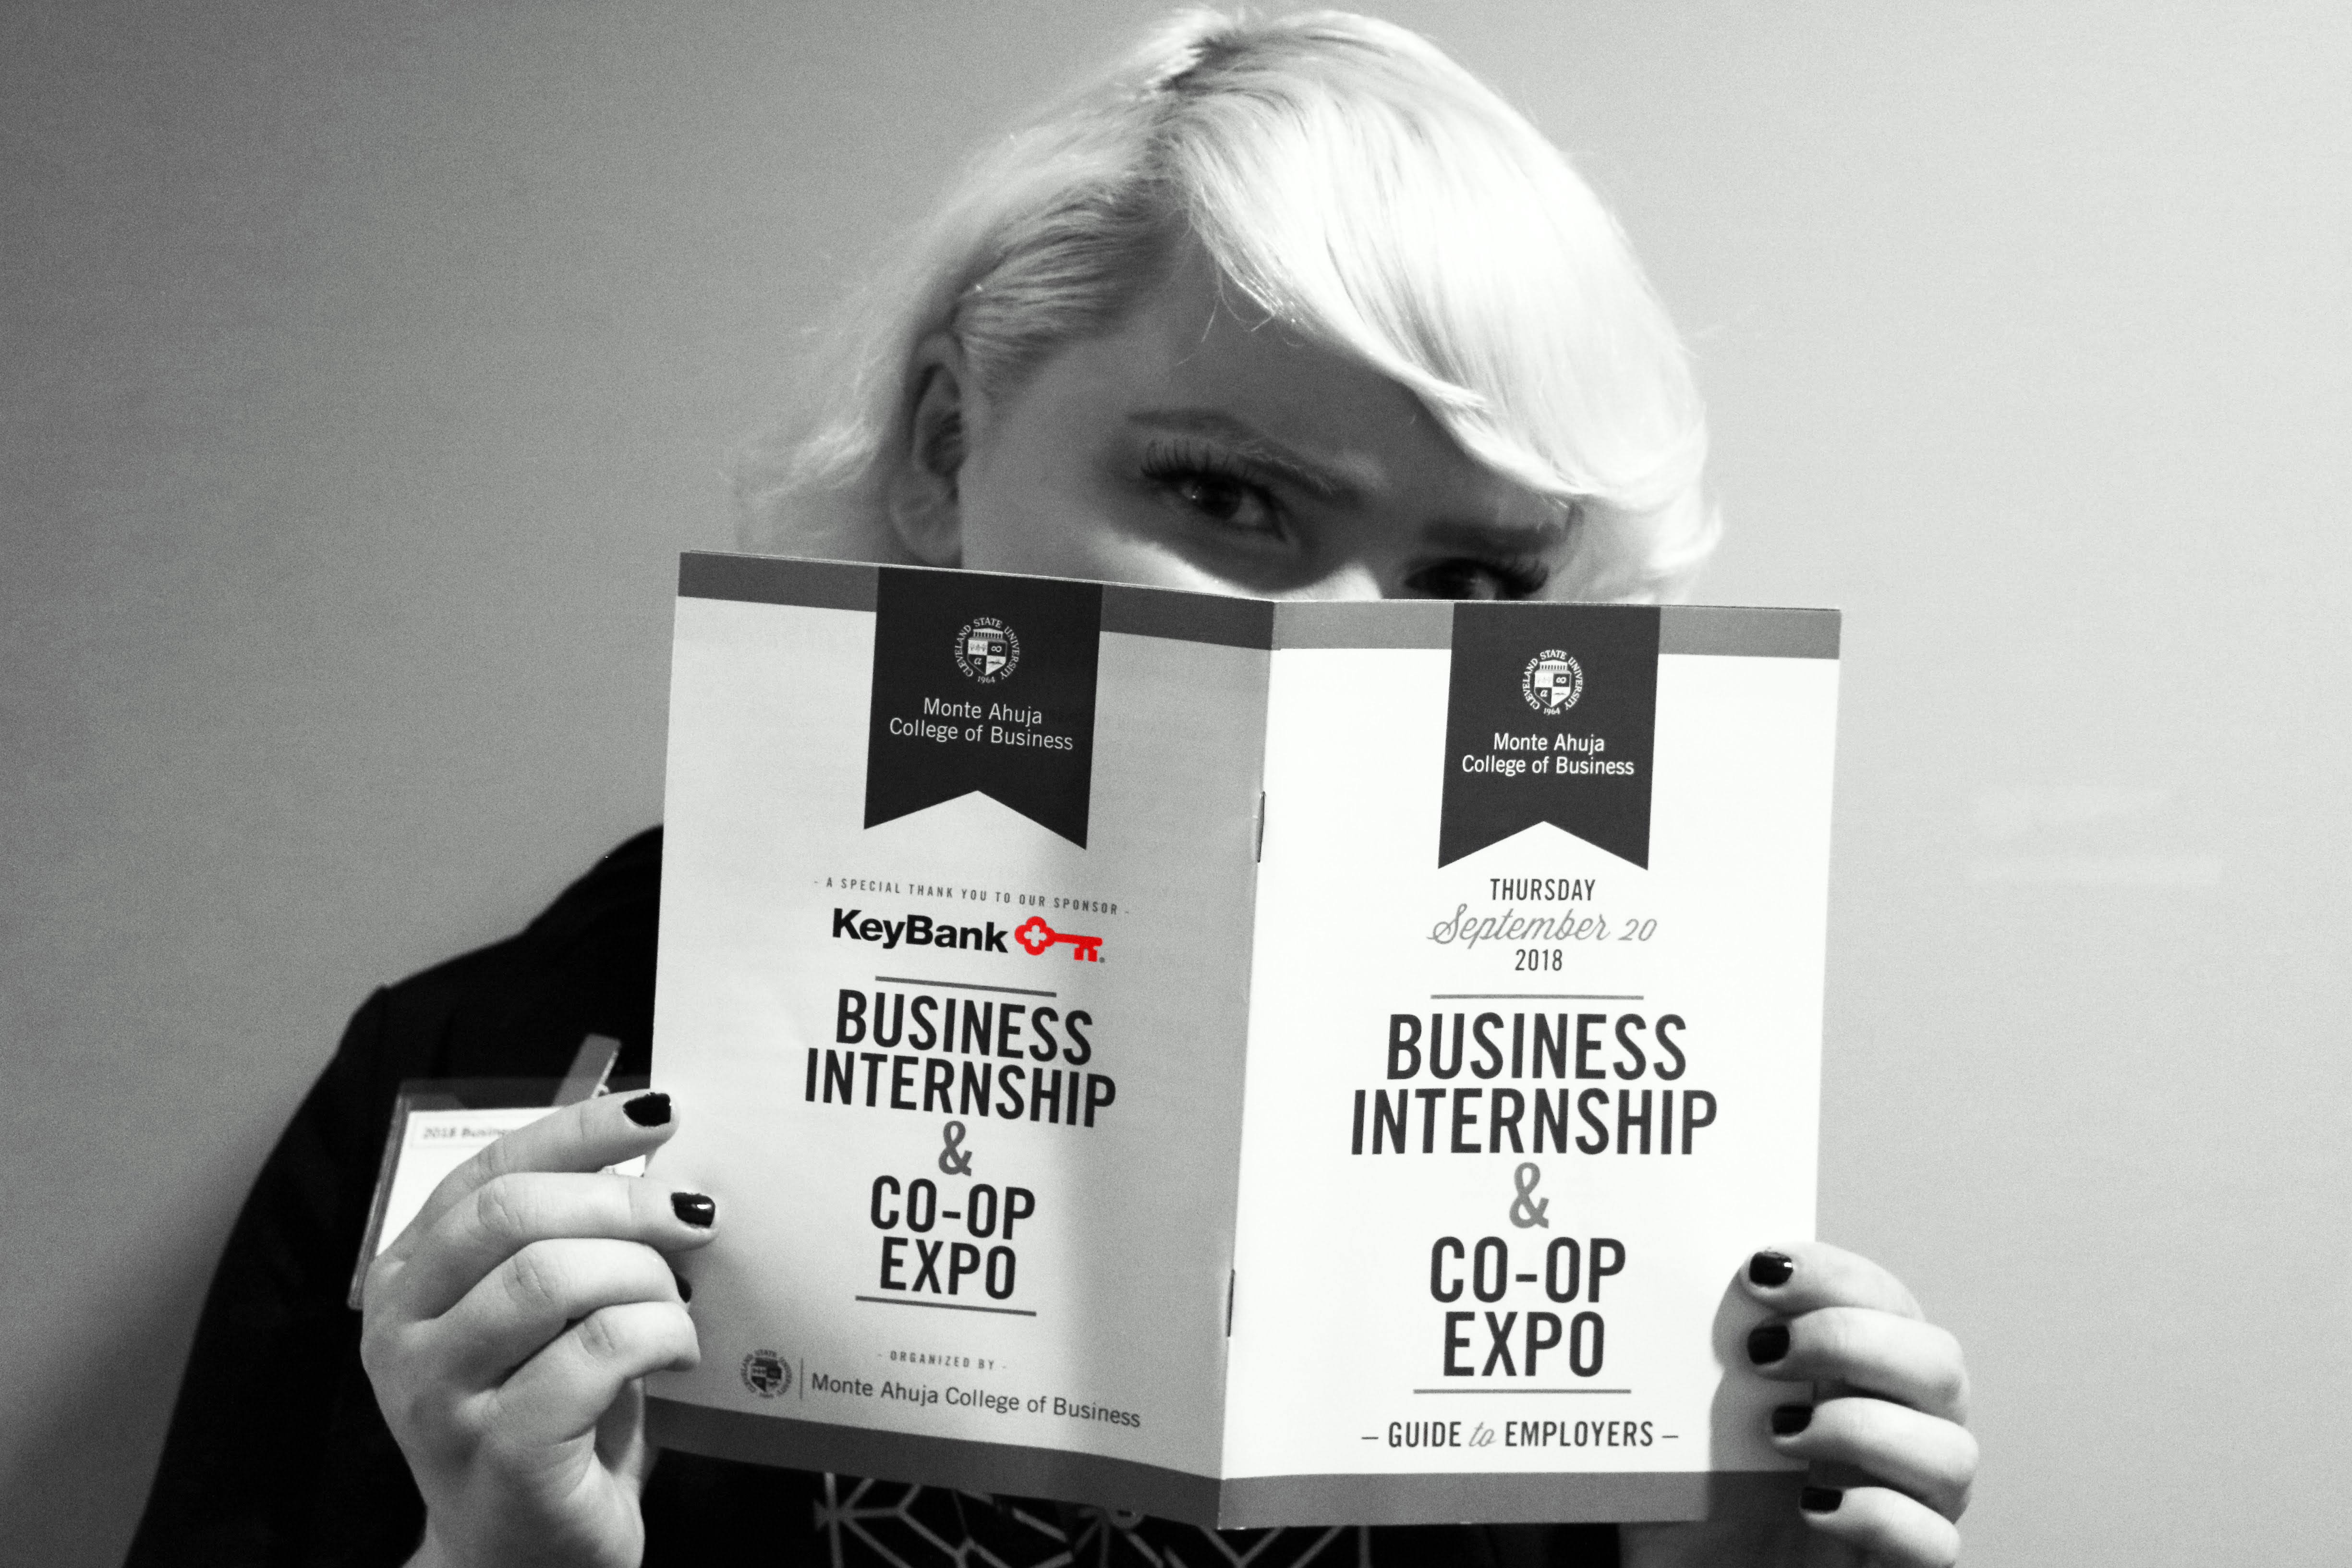 Business Internship & Co-op Expo 2018 Guide to Employers Photo